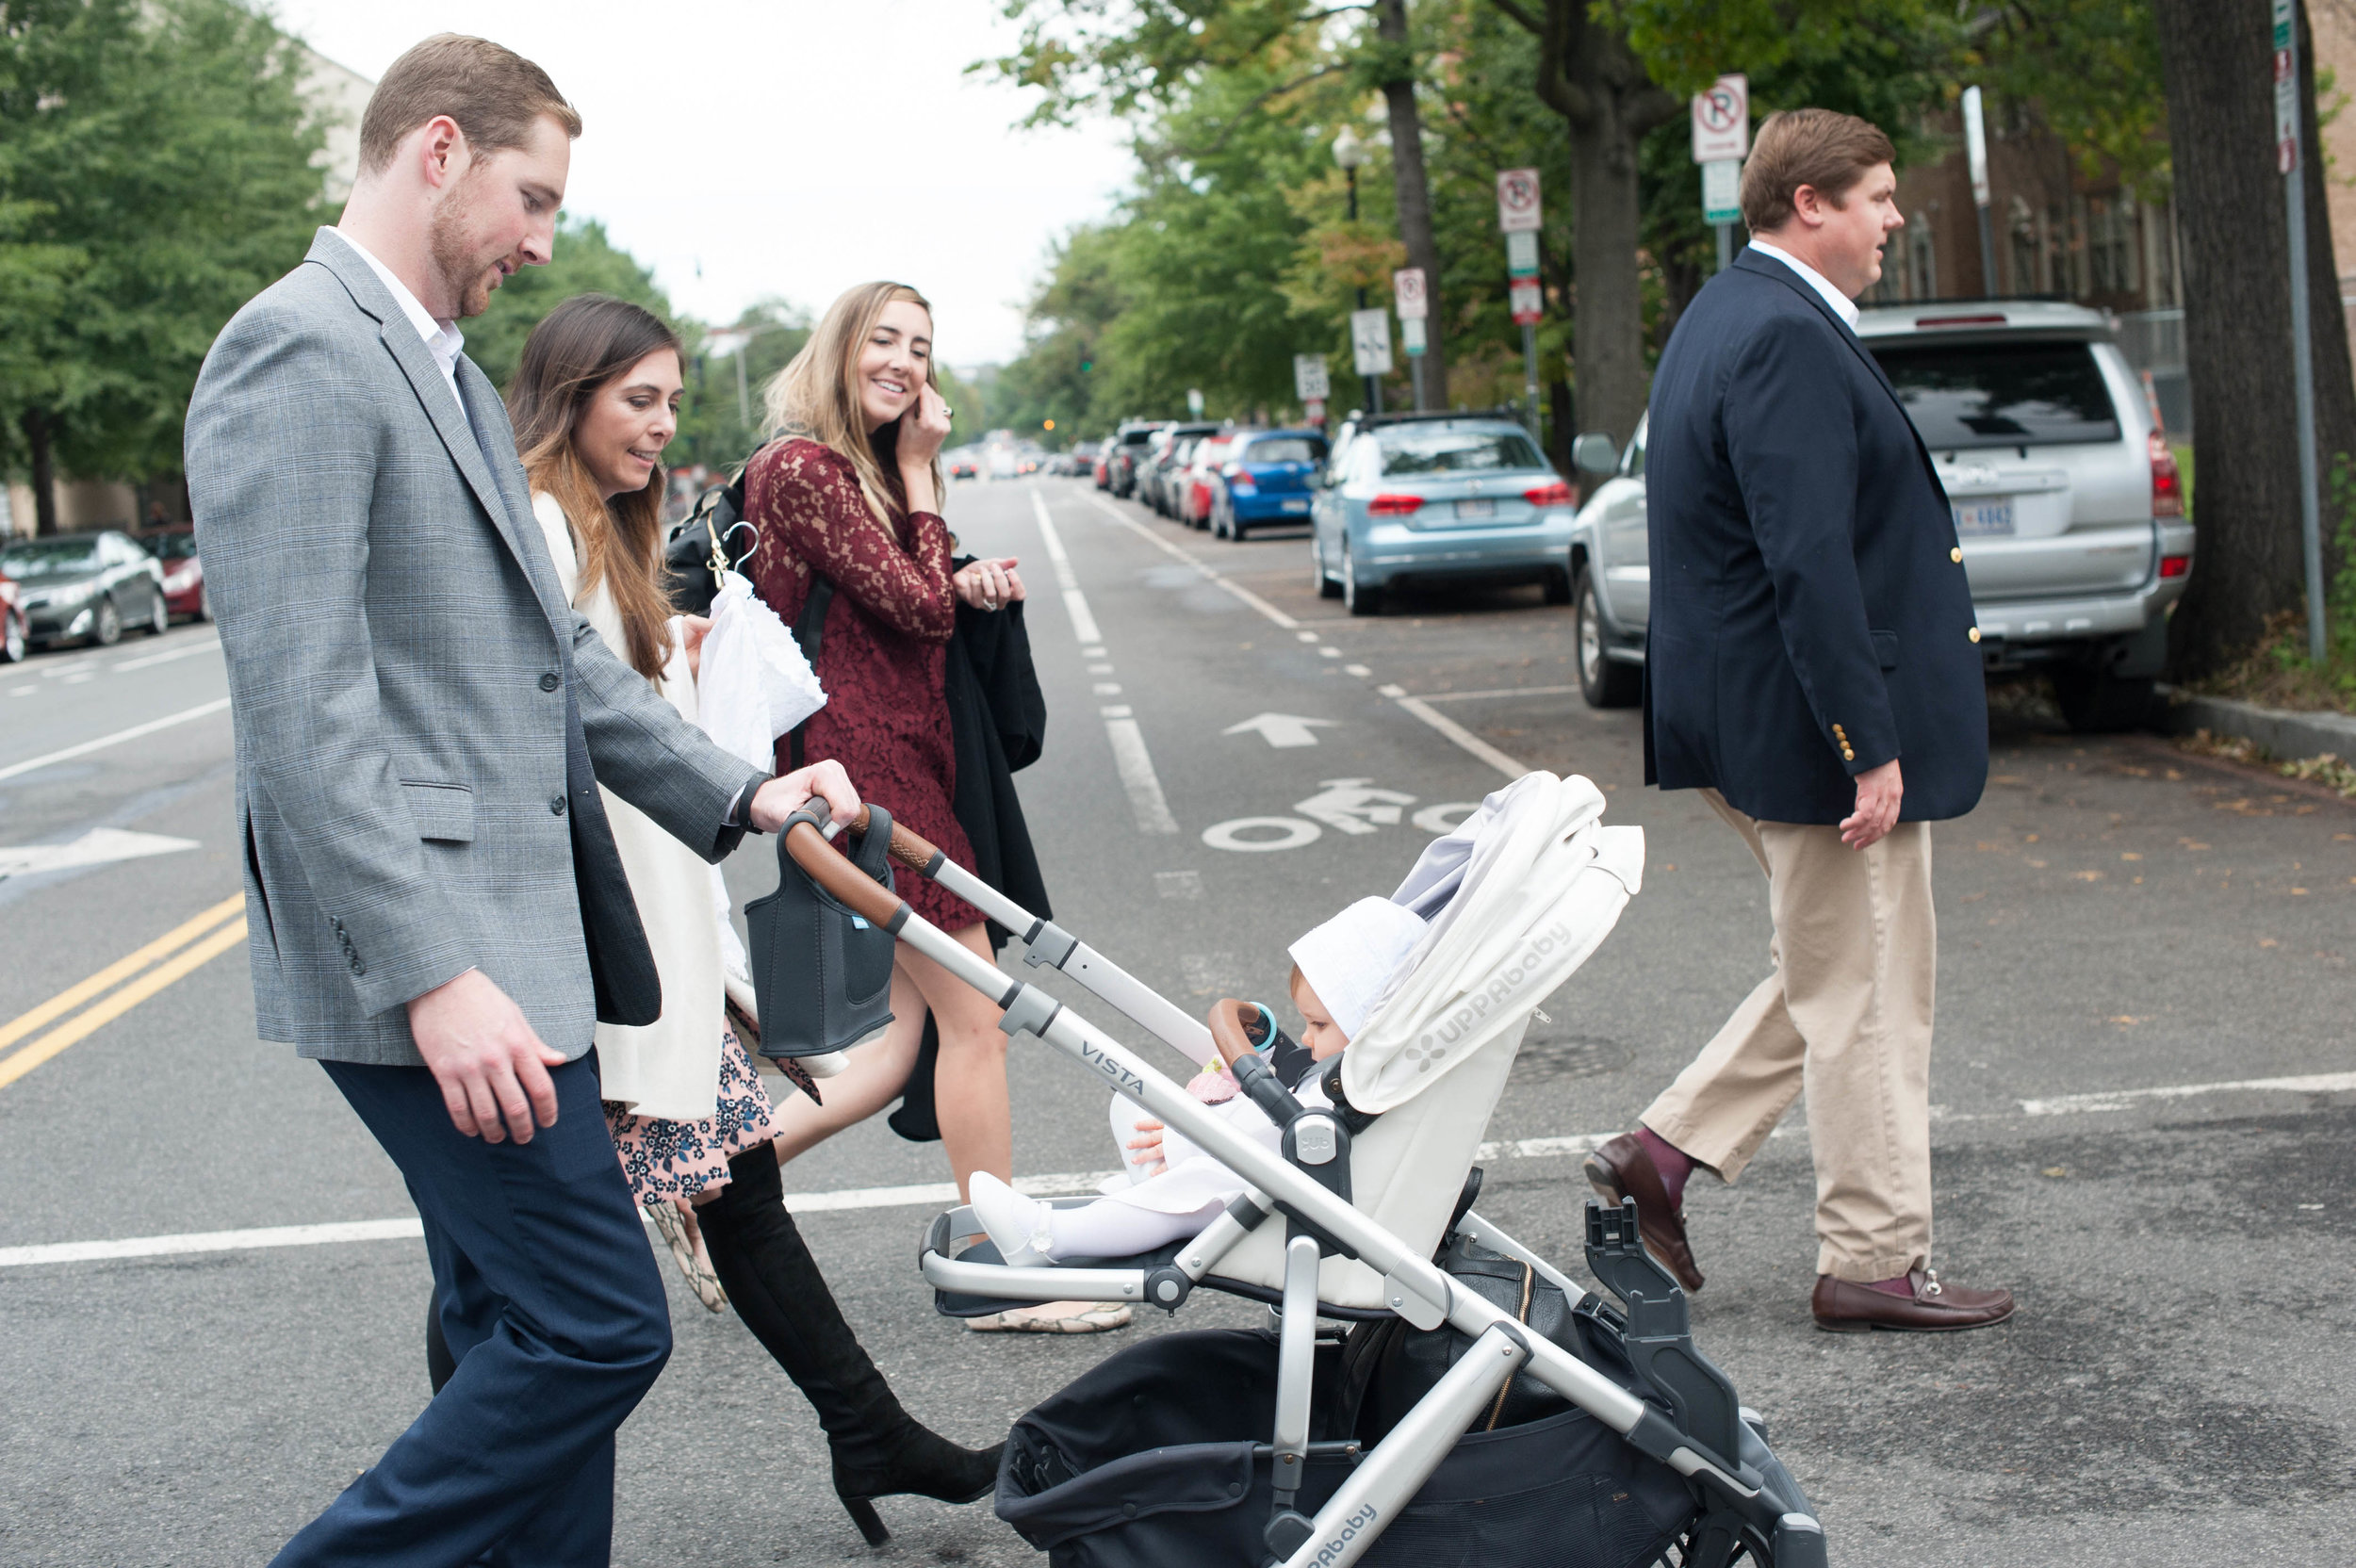 Parents, Godparents, and the Little Princess on their way to the church.